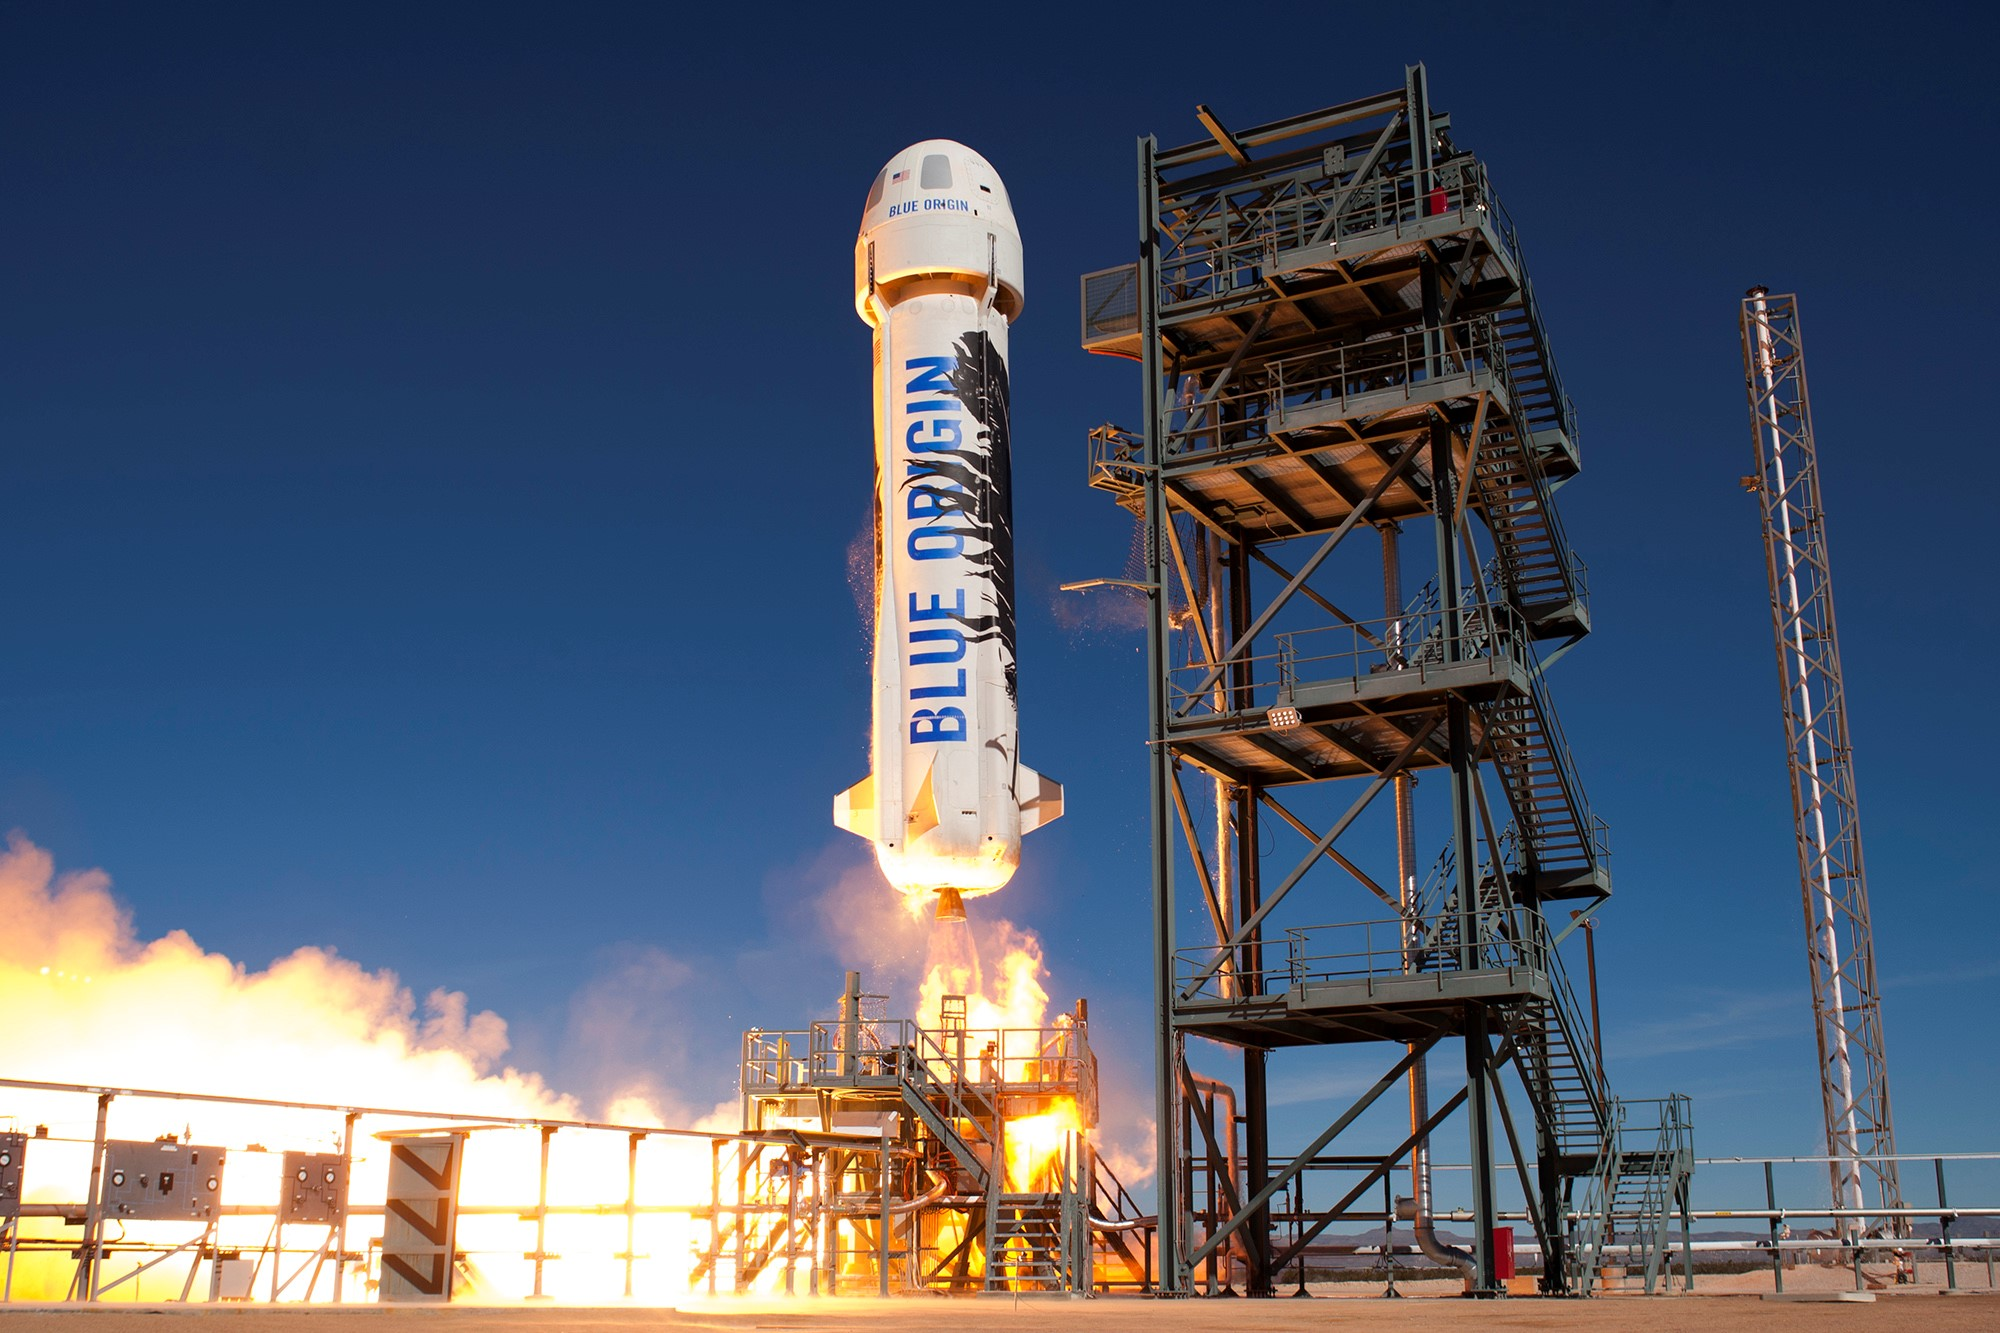 Watch Jeff Bezos's Blue Origin successfully launch its New Shepard rocket and totally stick the landing